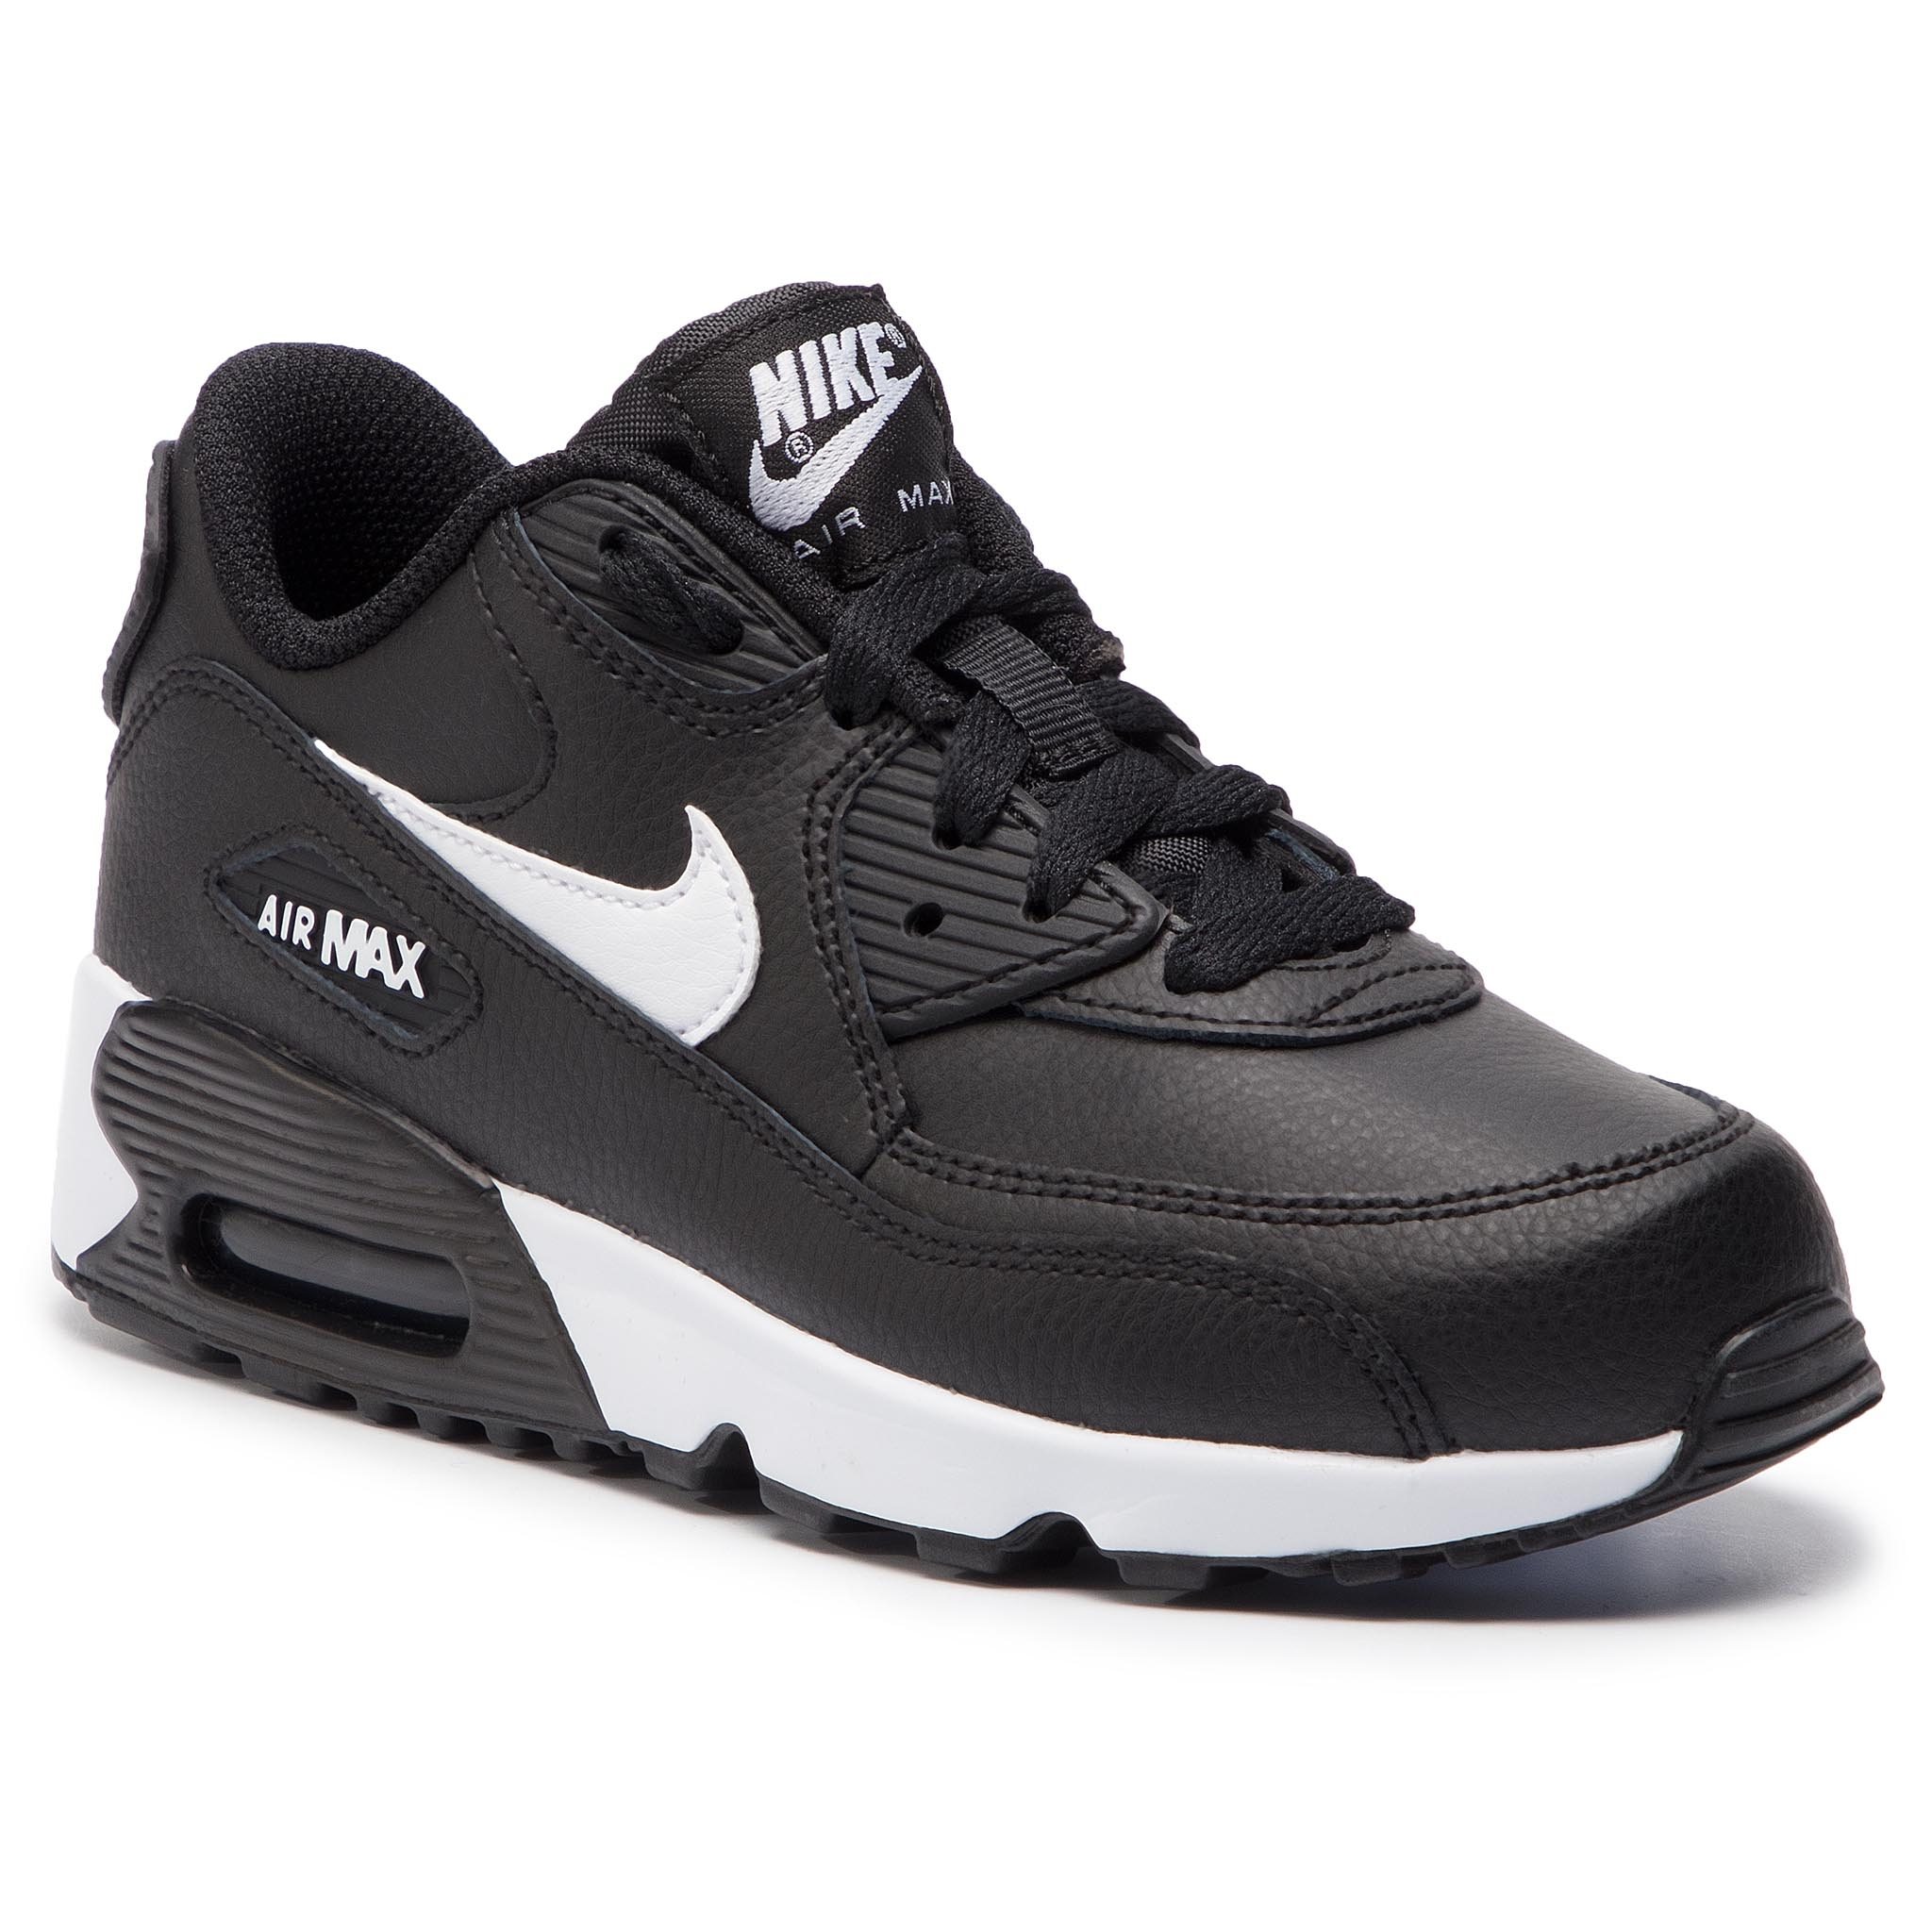 a426d34c Batai NIKE - Air Max 90 Ltr (PS) 833414 025 Black/White Anthracite